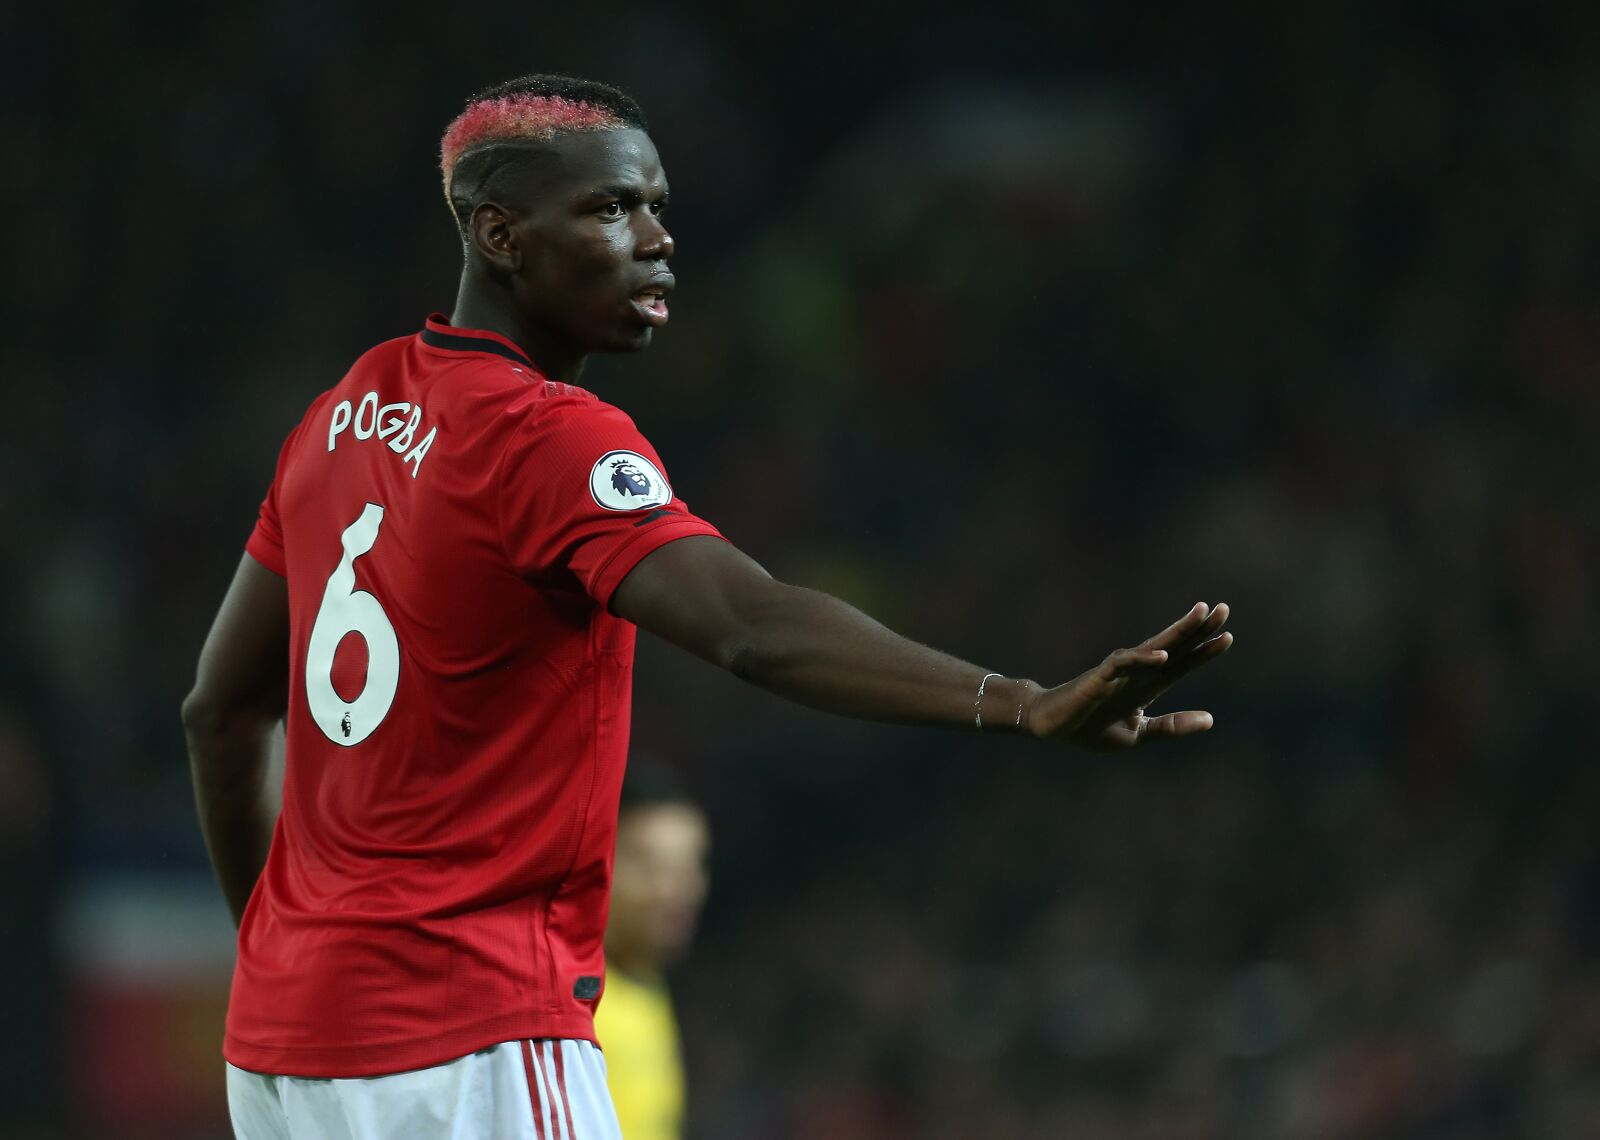 Real Madrid: Here's why Paul Pogba is not a dream signing